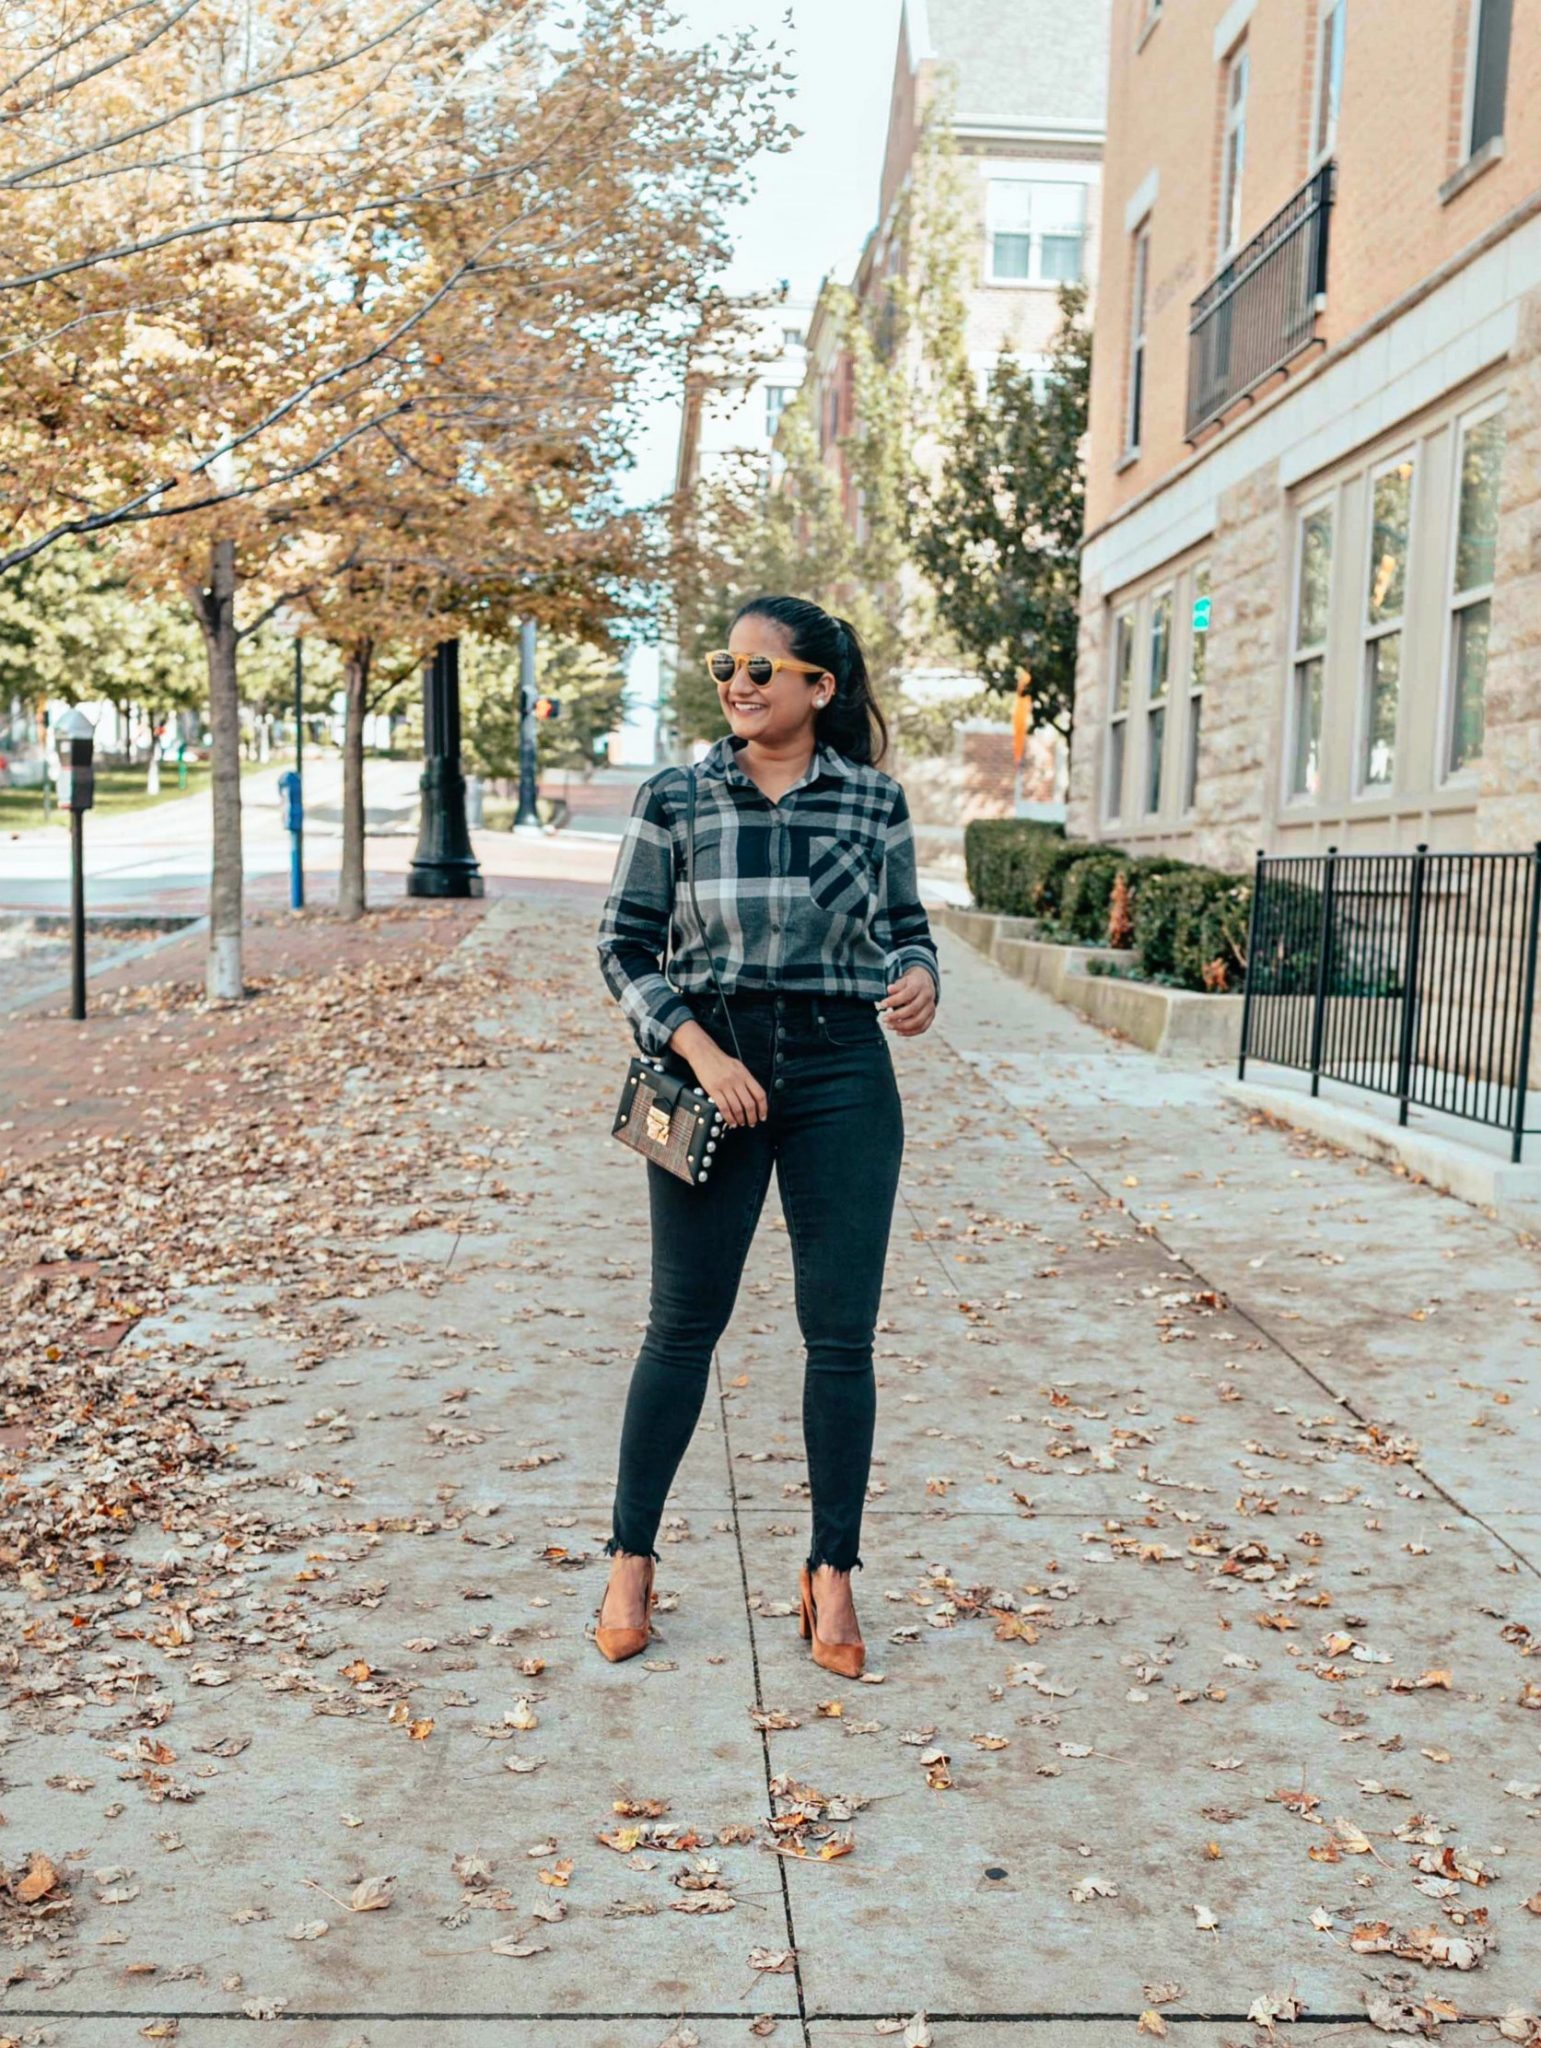 How to wear flannel shirts to work | Eddie Bauer boyfriend flannel shirt styled 4 ways, featured by top Ohio modest fashion blog, Dreaming Loud